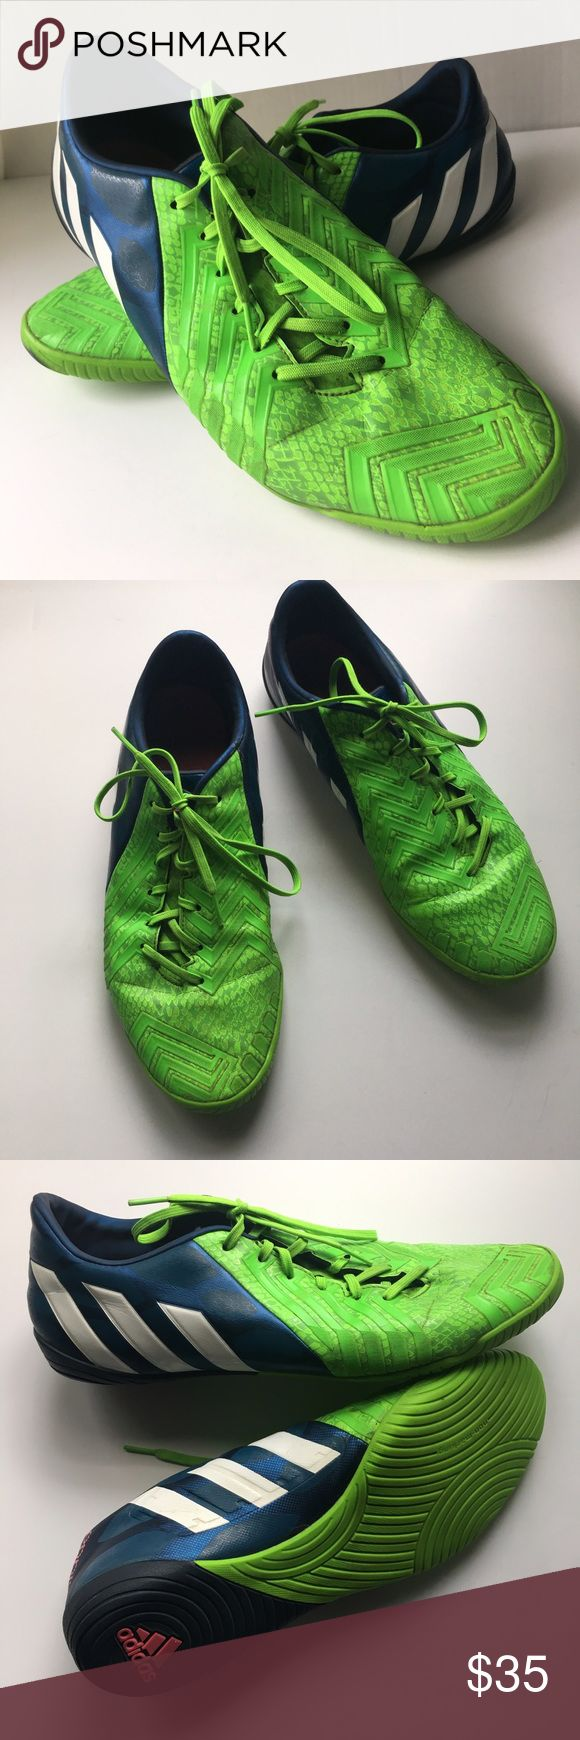 Adidas // Predator Absolado Instinct Sneakers Green, blue, and white Predator Absolado instinct Sneakers from Adidas. Textured soles for indoor courts. Bright green toes and laces. Dark blue heels with white adidas stripes. Have been worn, in great condition. Adidas Shoes Athletic Shoes